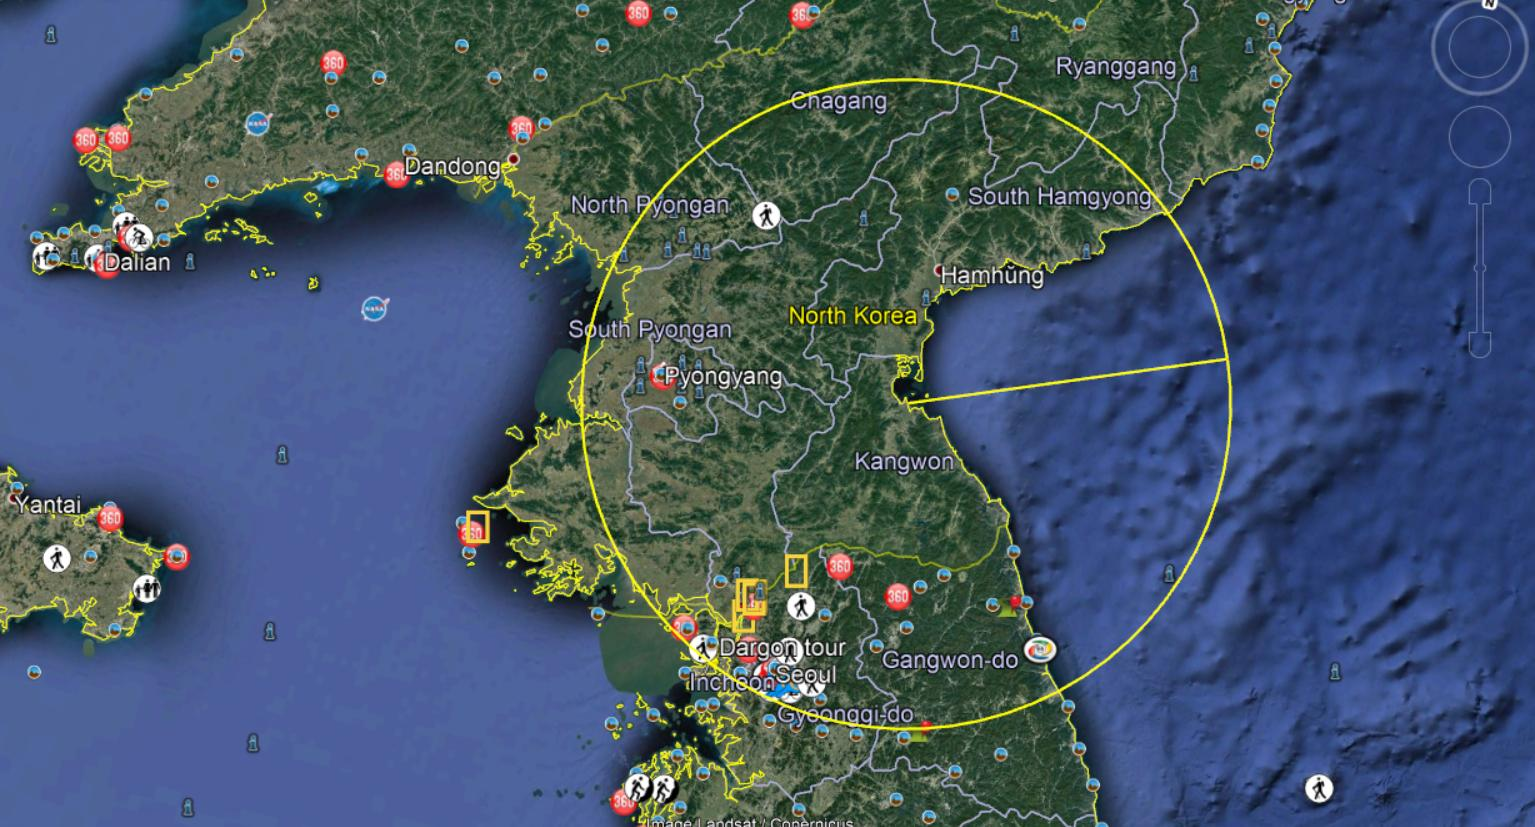 So ROK reporting projectiles with range up to 70 to 200kms from Wonsan https://t.co/68jwWhxTdu